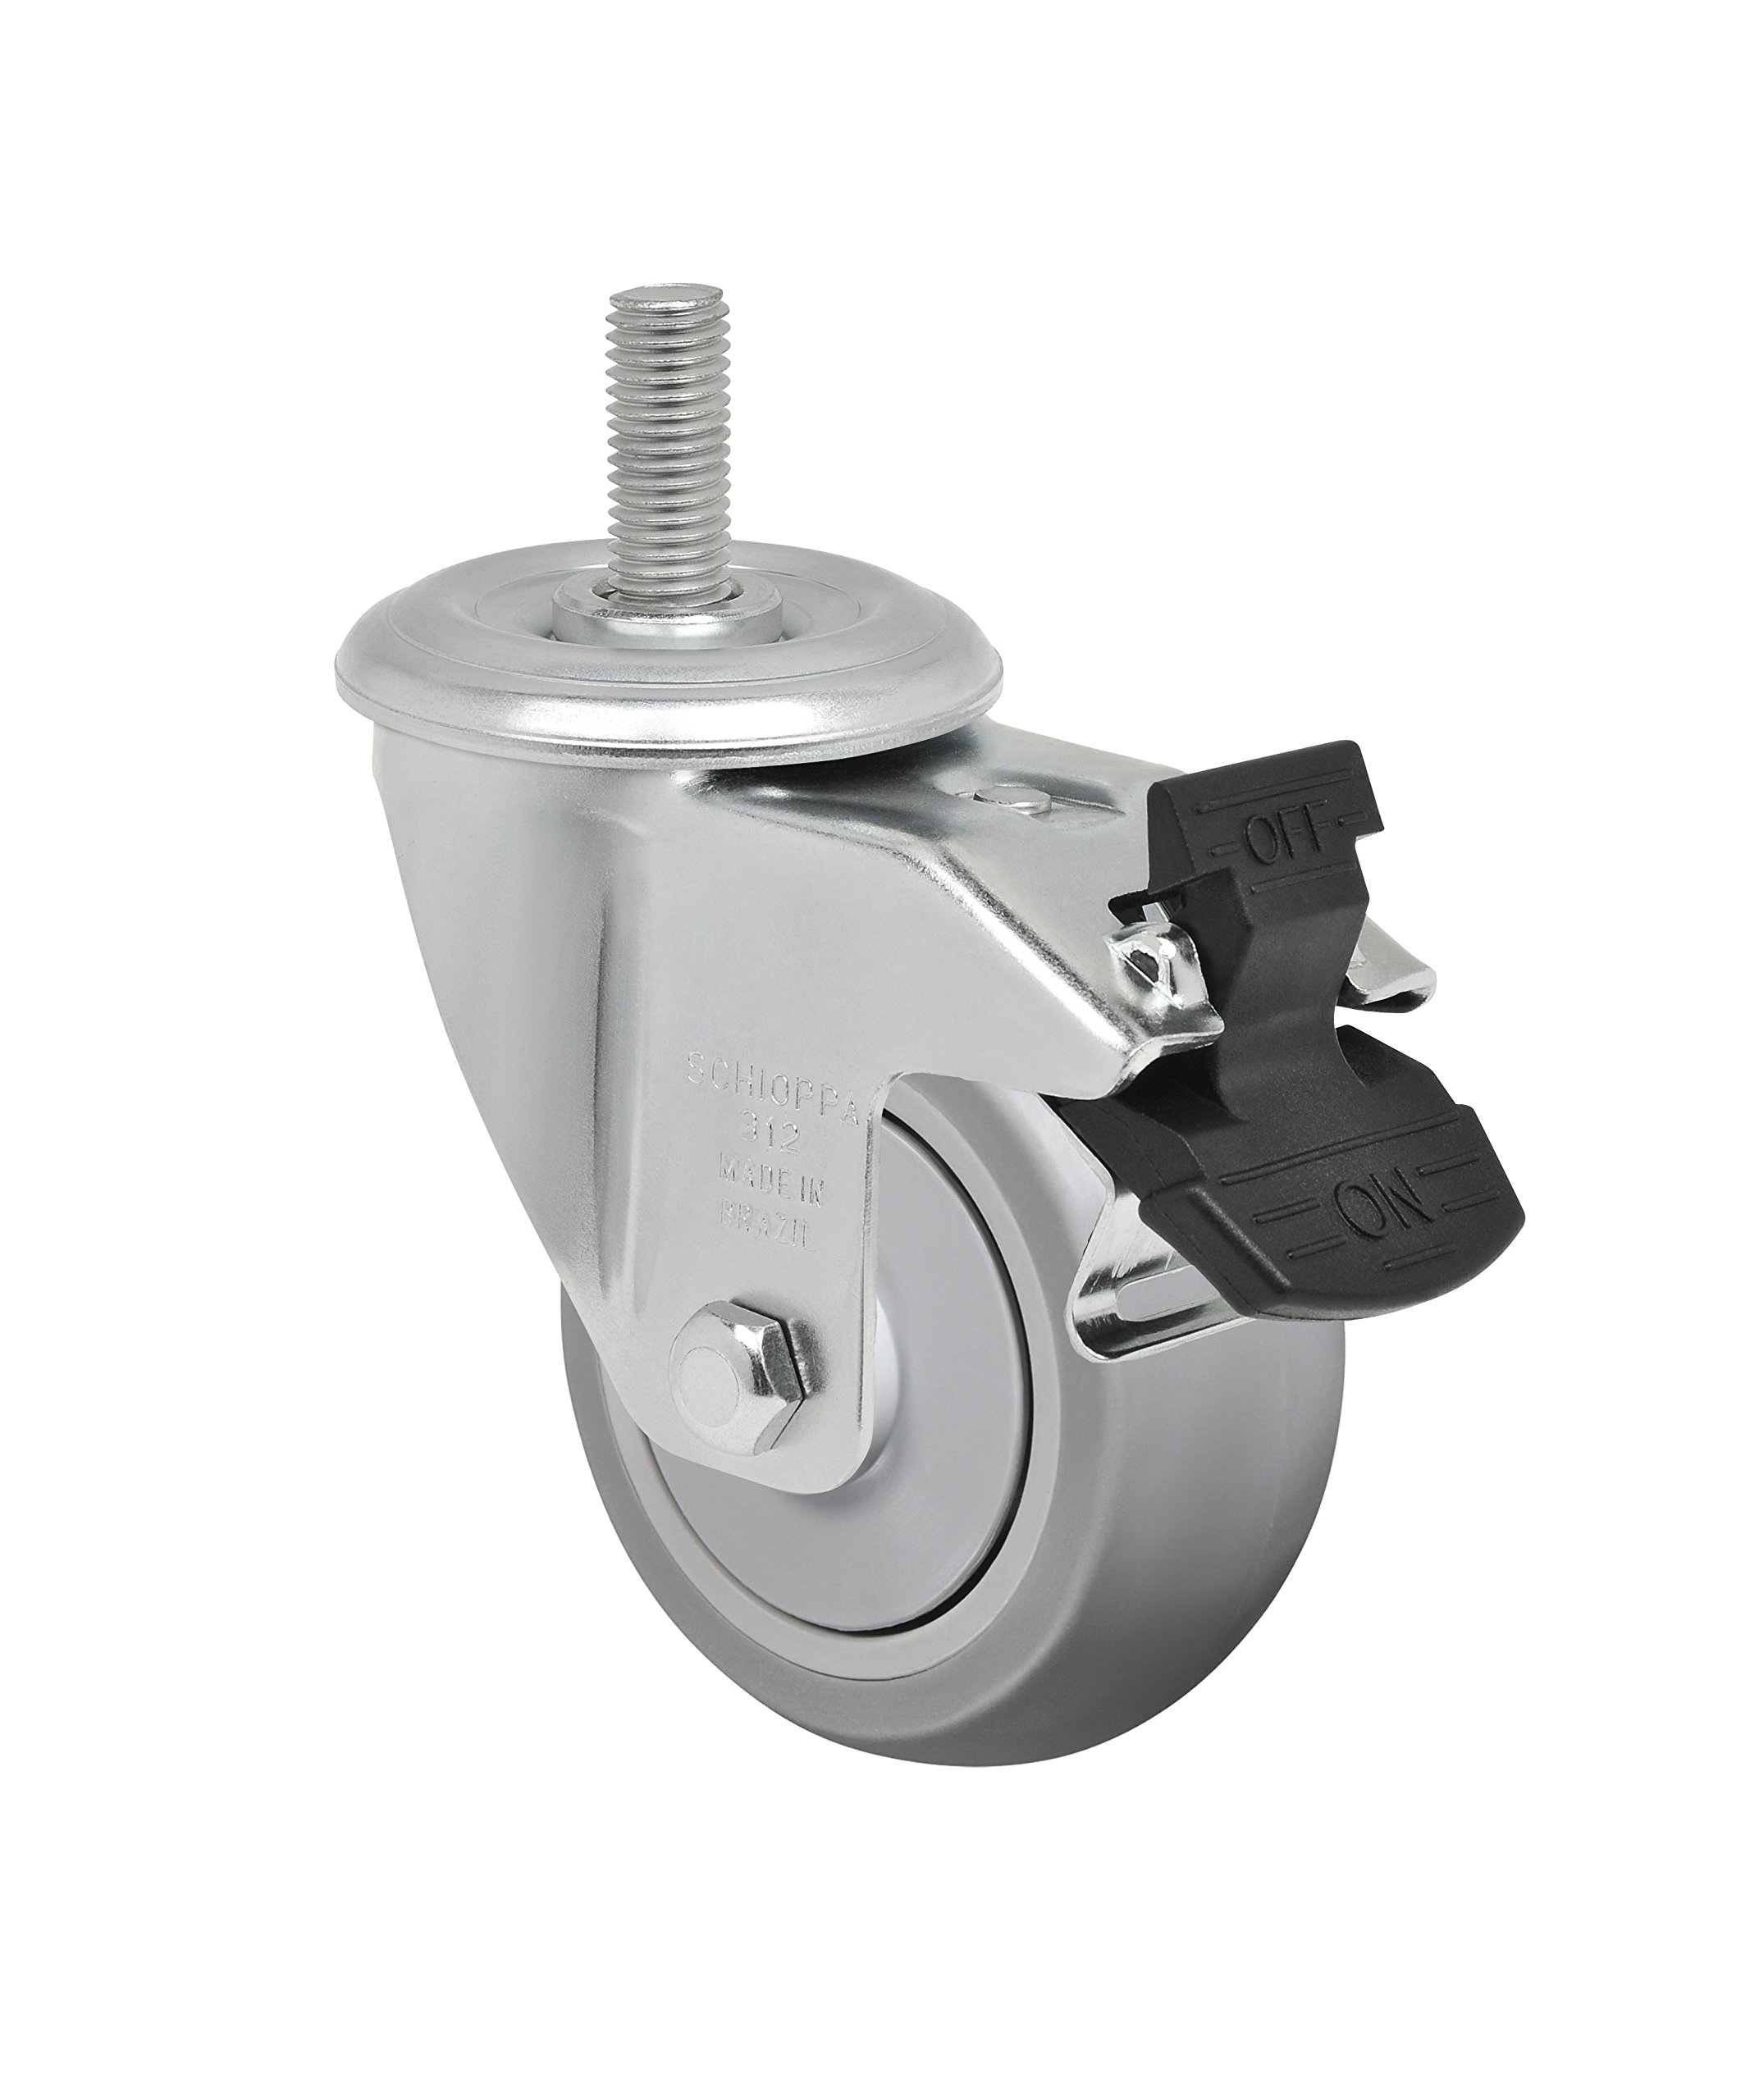 Schioppa L12 Series, GLEEF 312 SP G, 3 x 1-1/4'' Swivel Caster with Total Lock Brake, Non-Marking Extra Soft Thermoplastic Rubber Wheel, 125 lbs, 3/8'' Diameter x 1-1/2'' Length Threaded Stem